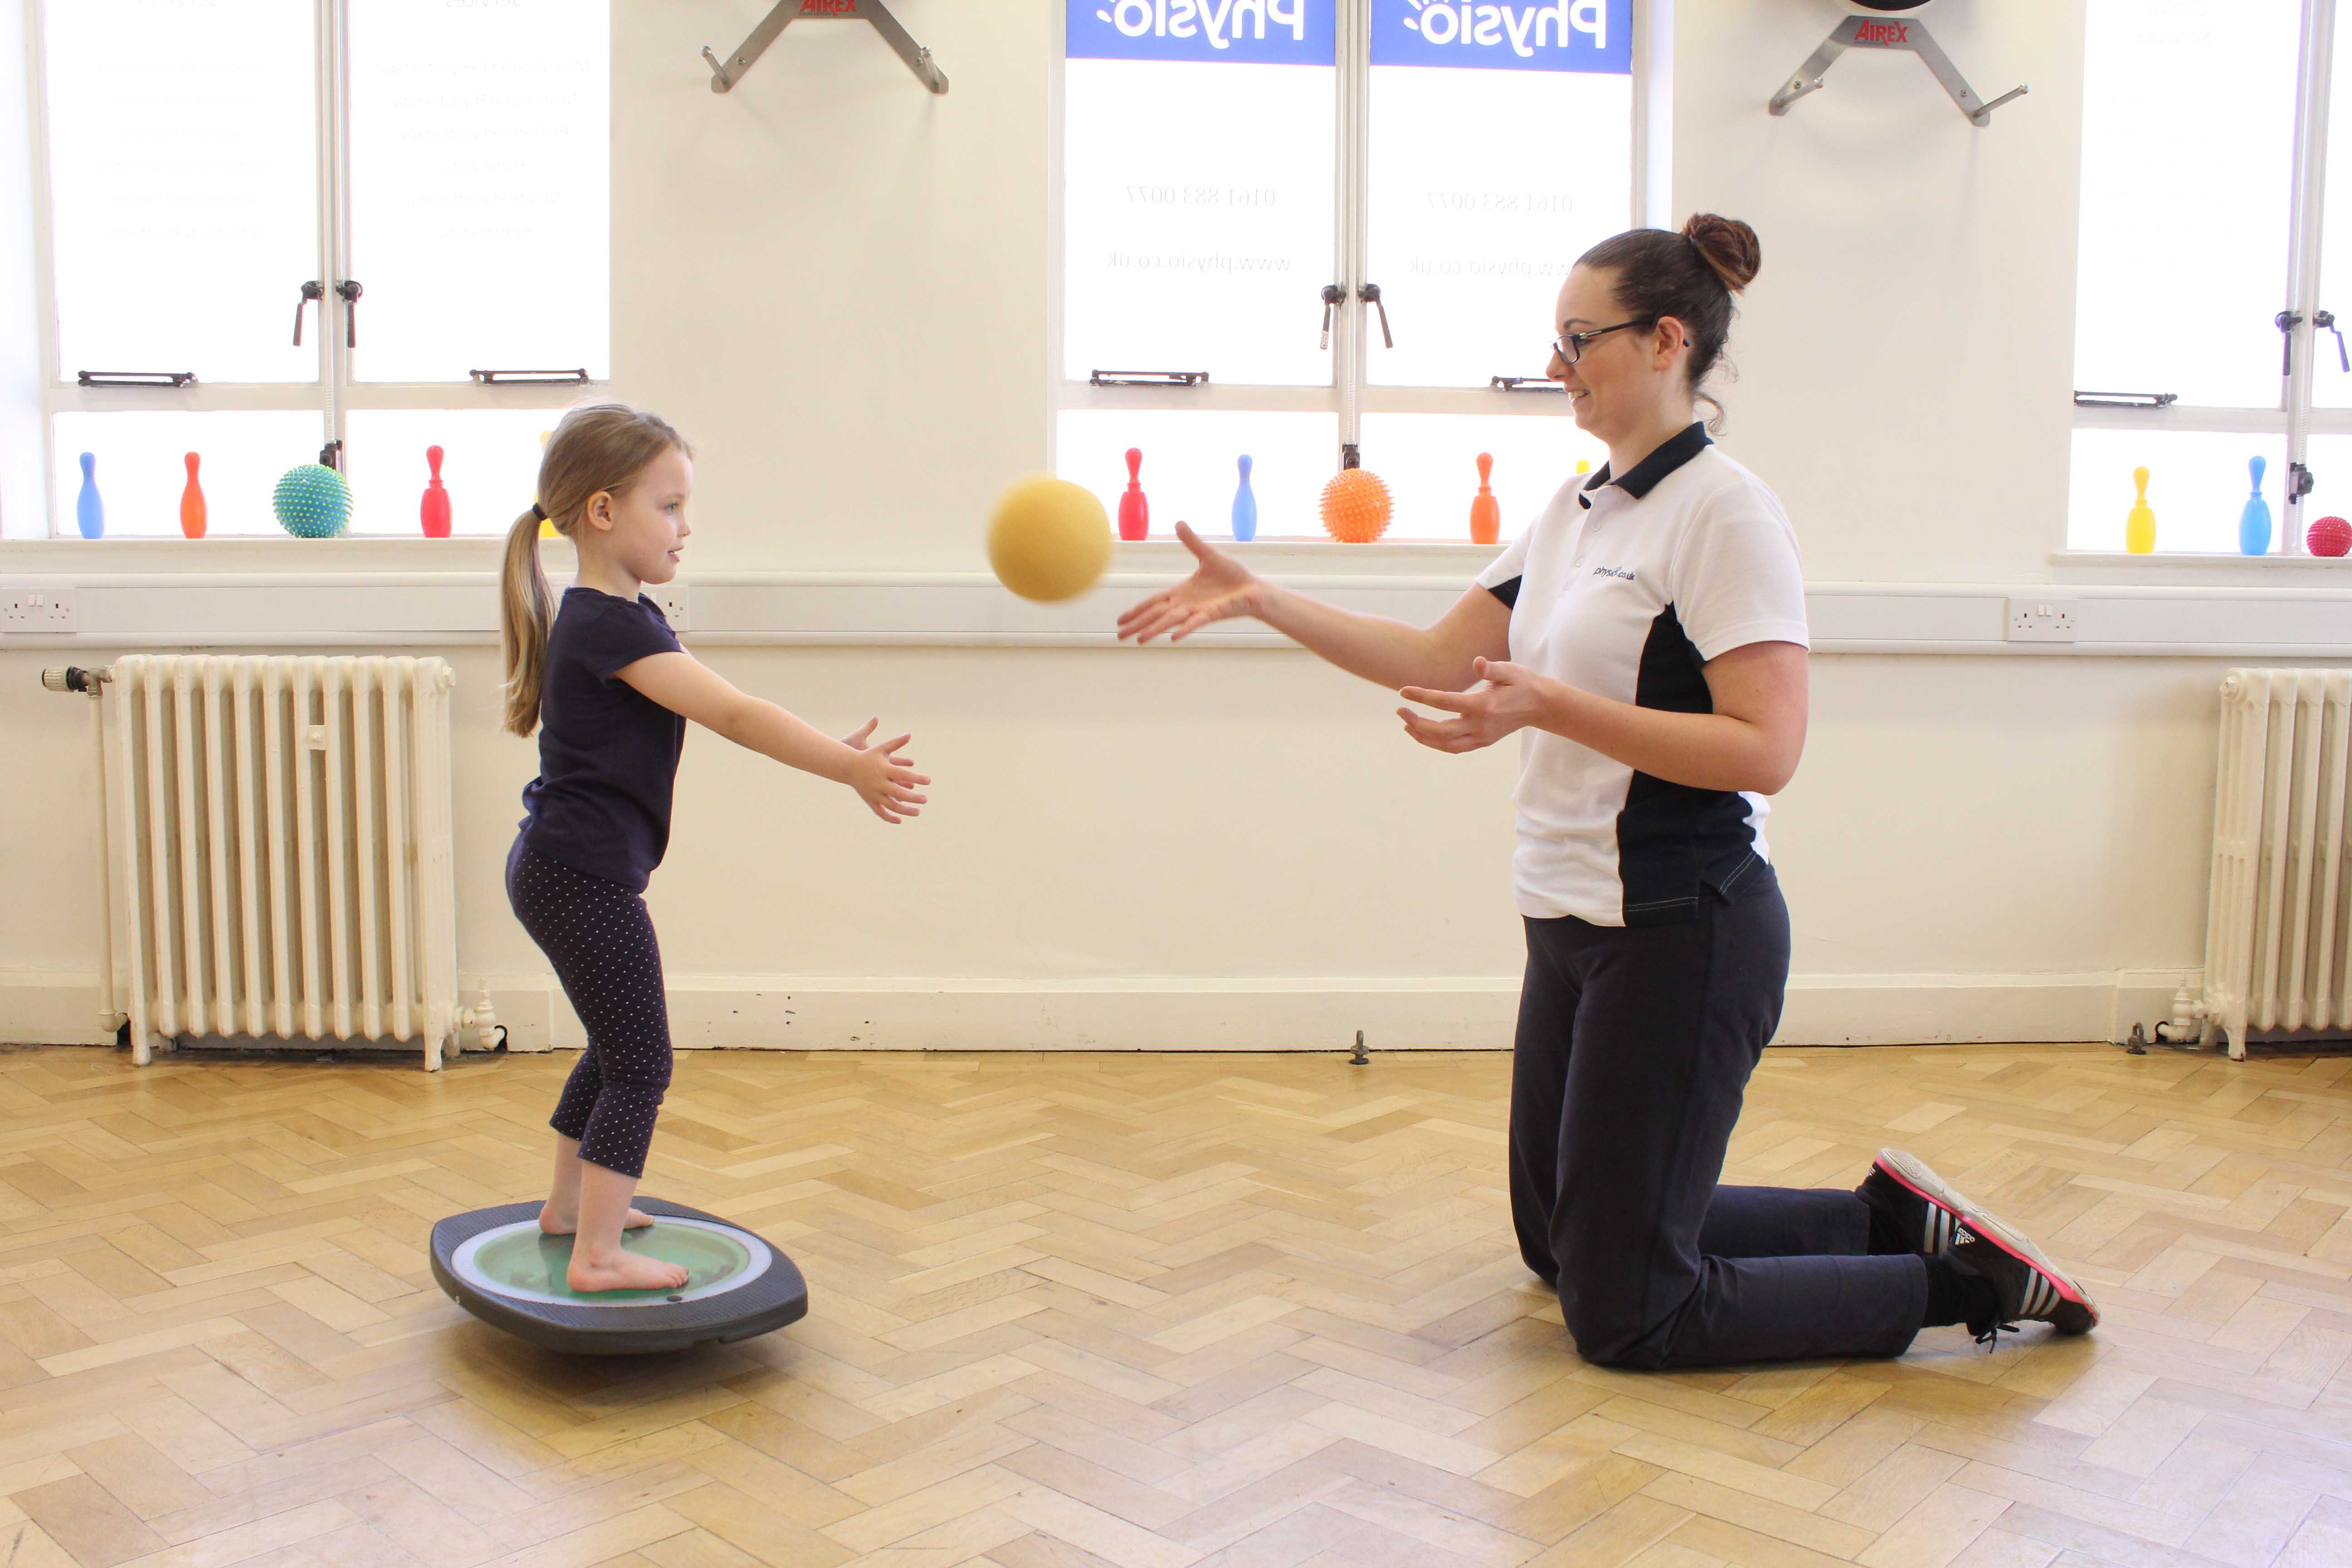 Dynamic balance training to improve co-ordination